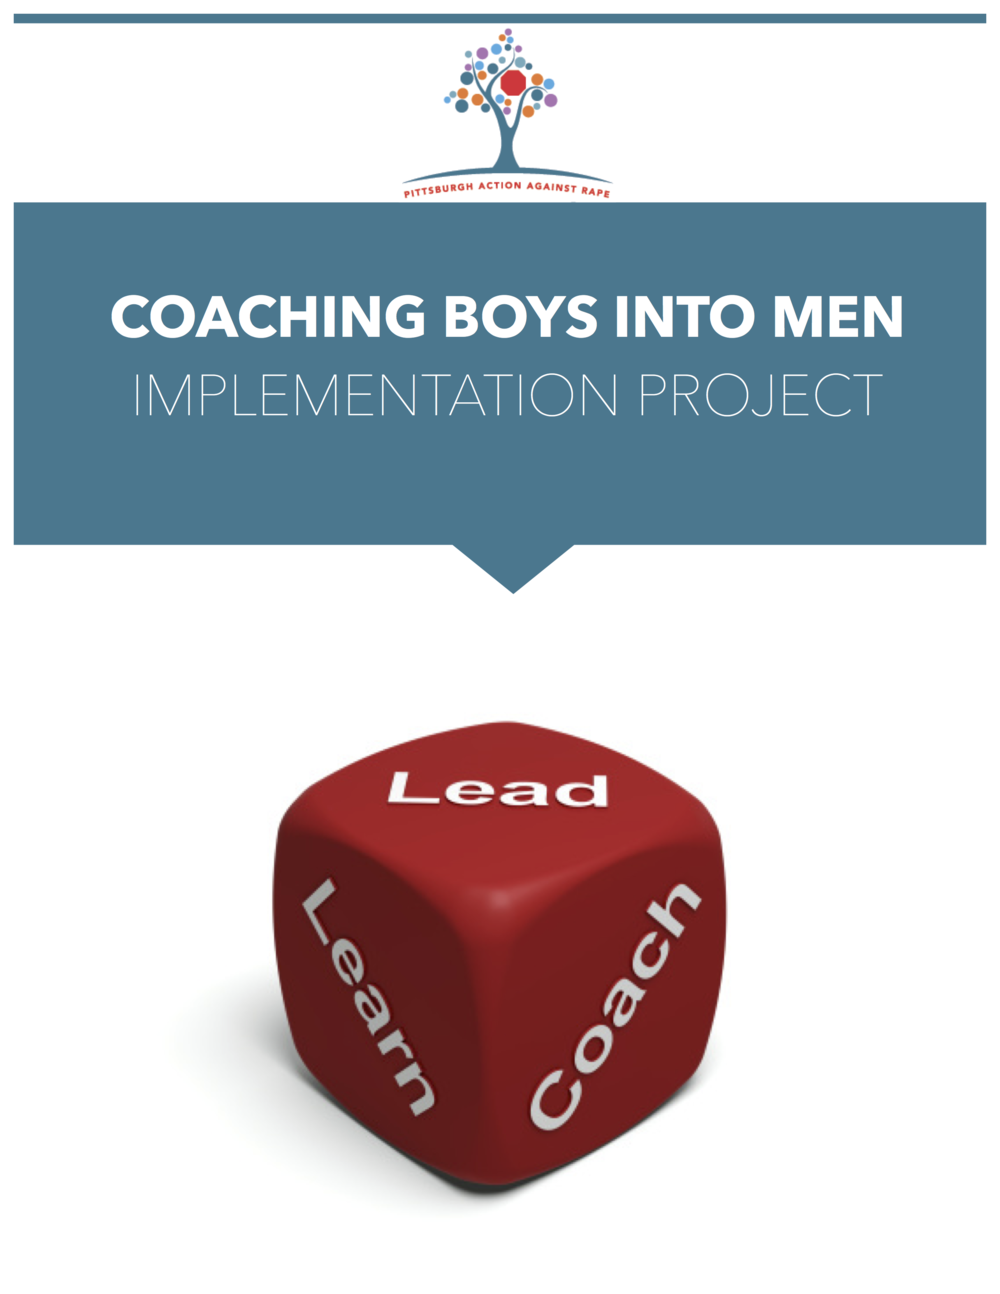 This is page 1 of the end-of-project report. It was amazing to lead, learn, and coach alongside my social change collaborators at PAAR as we evaluated their implementation of Coaching Boys Into Men. (I am easily excited by evaluation, in general, but this project ALL-CAPS JAZZED ME UP.)